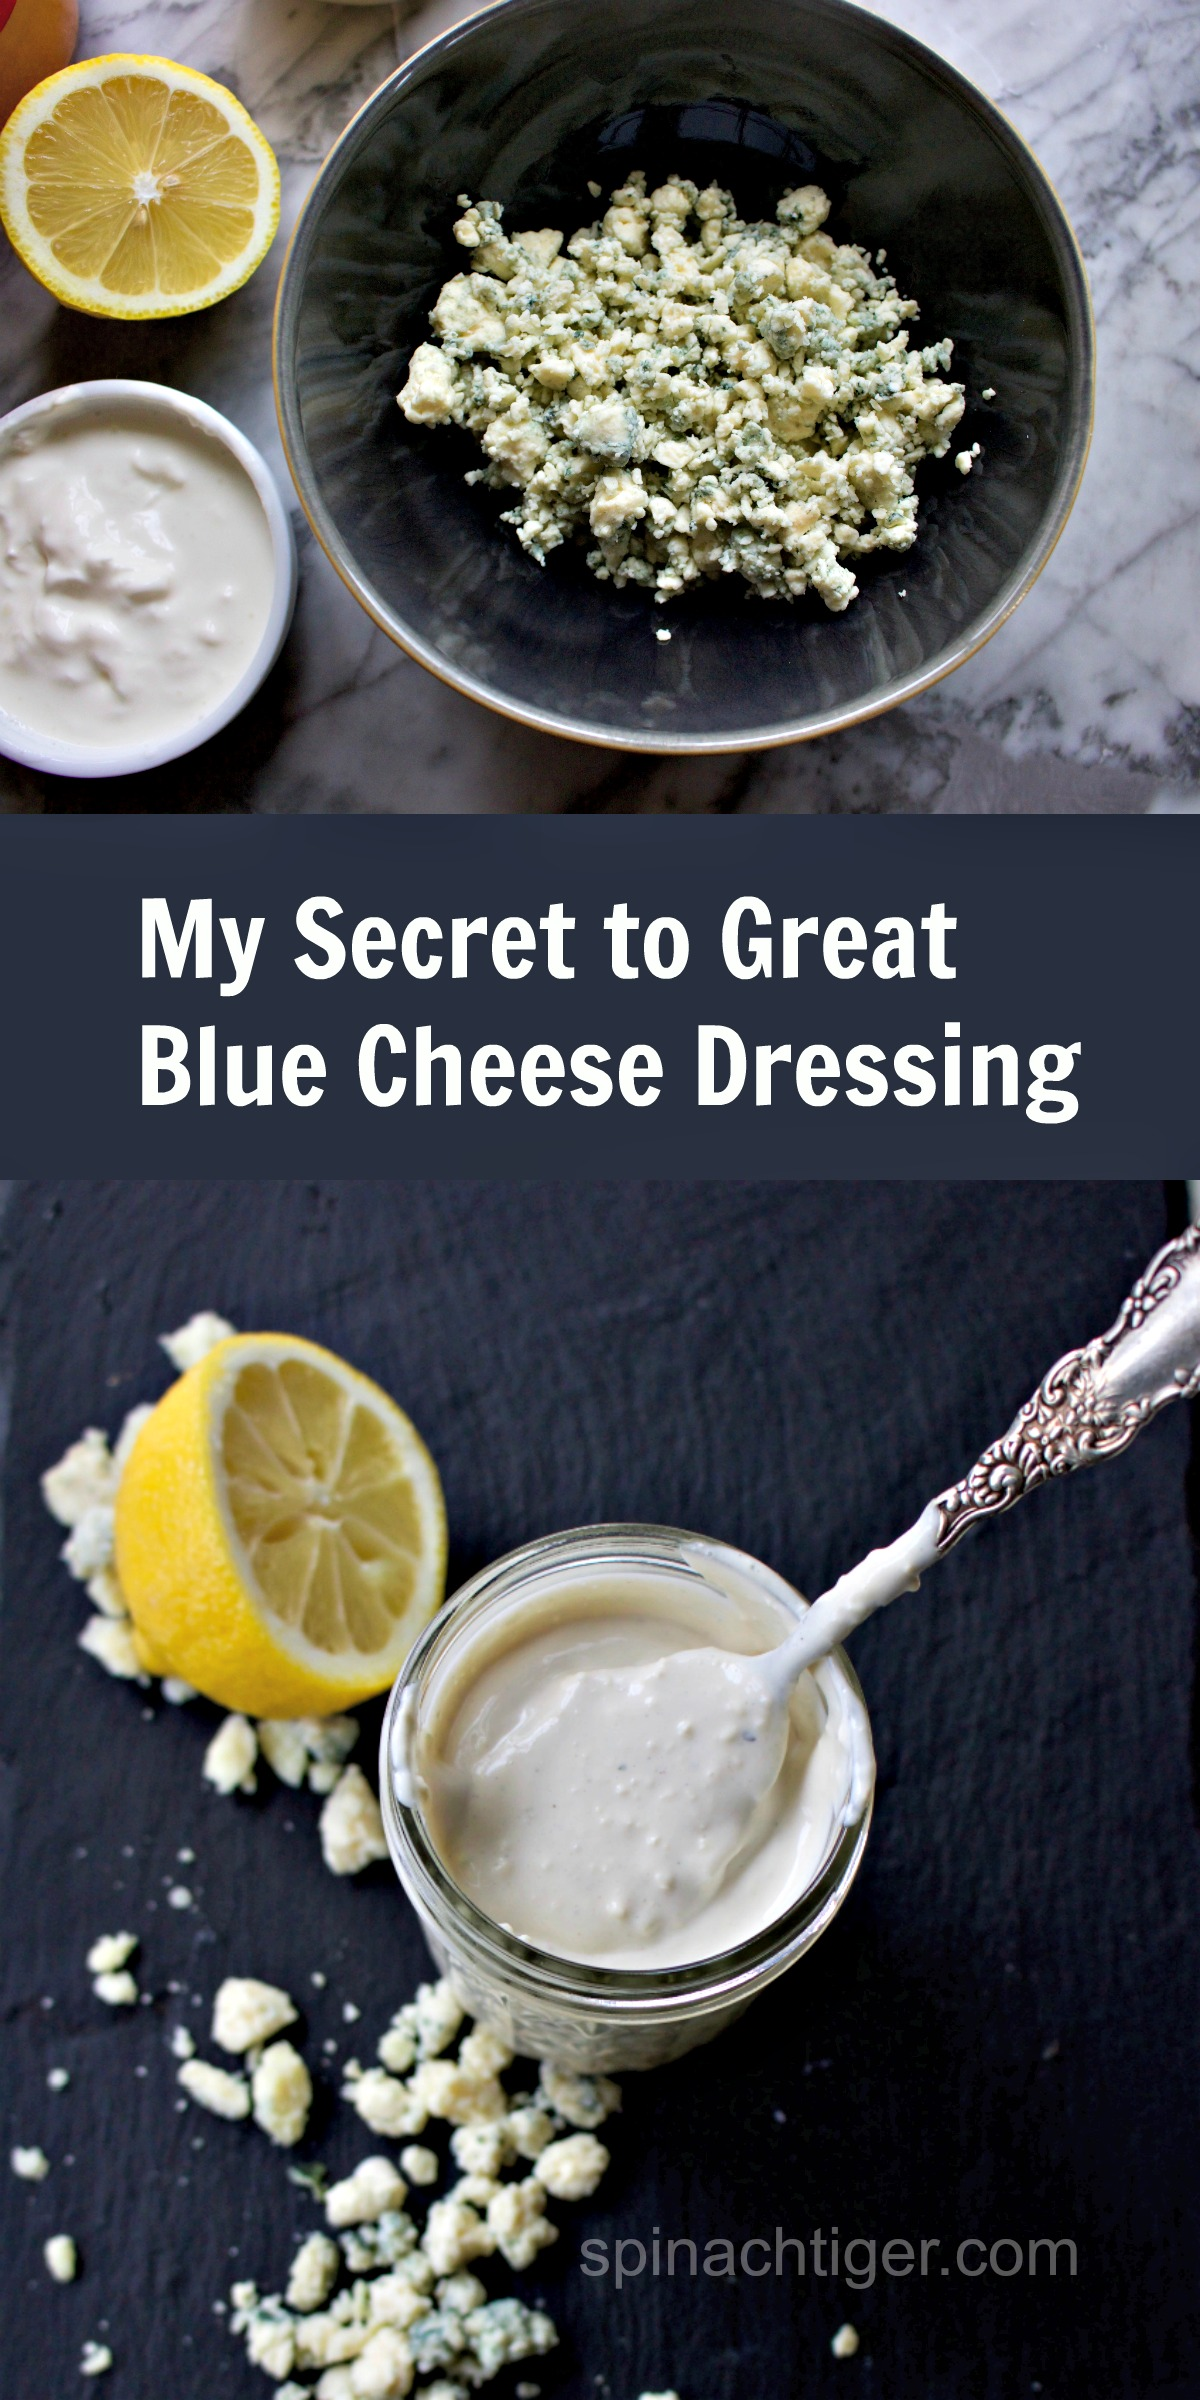 Secret to best blue cheese dressing from spinach tiger